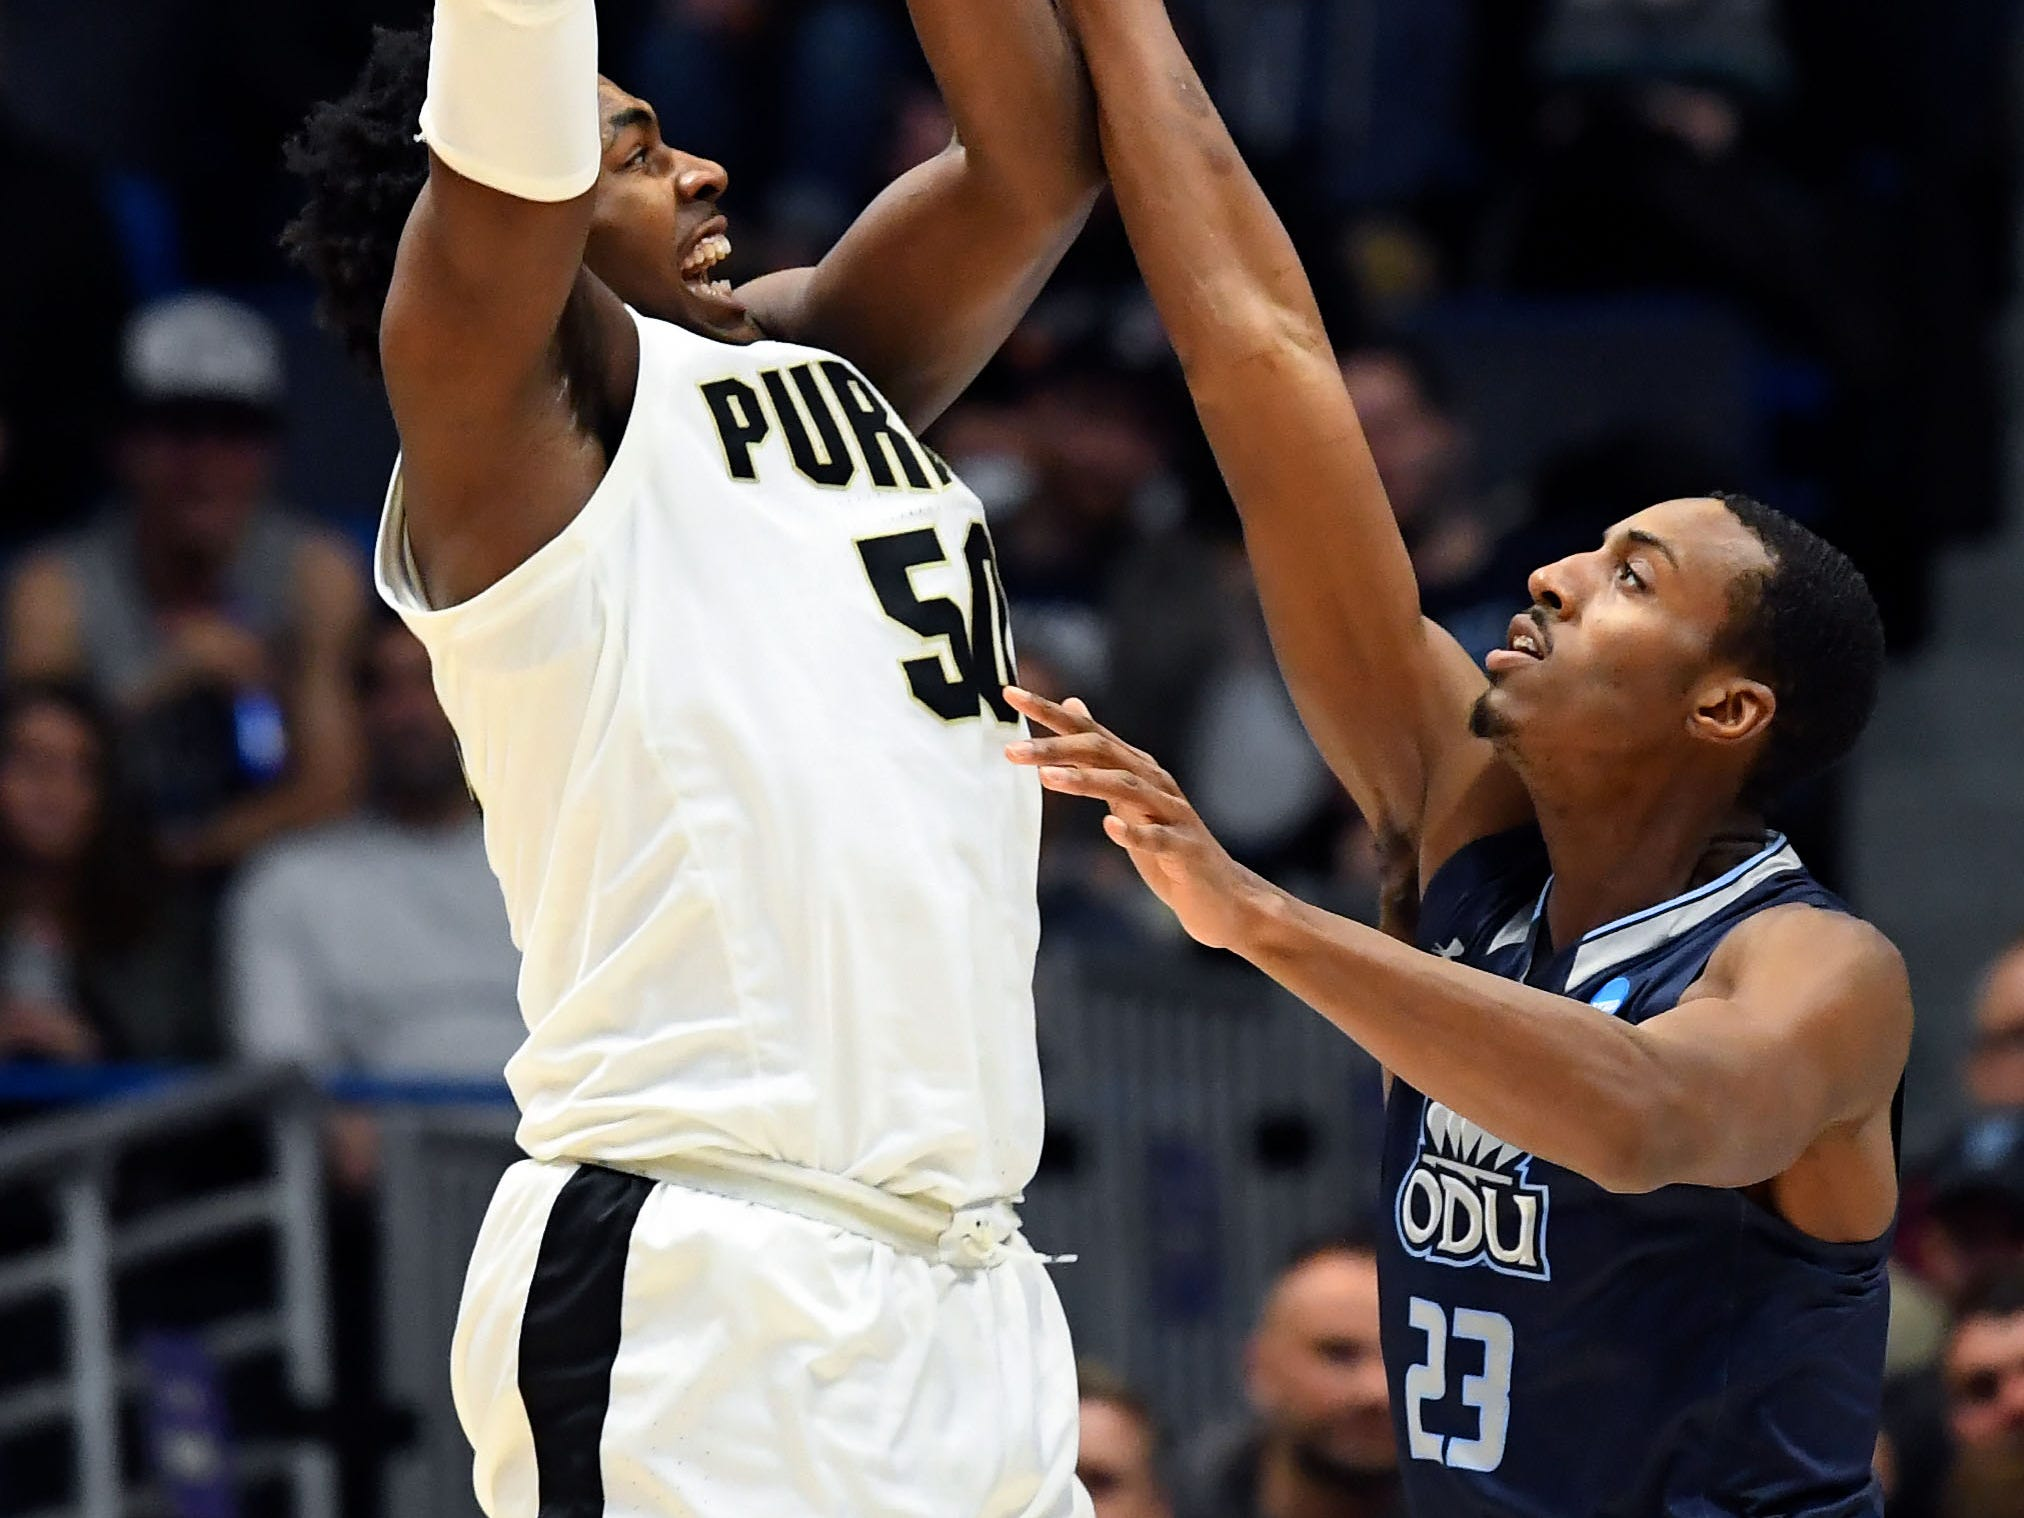 Mar 21, 2019; Hartford, CT, USA; Purdue Boilermakers forward Trevion Williams (50) attempts a shot past Old Dominion Monarchs forward Dajour Dickens (23) during the first half of a game in the first round of the 2019 NCAA Tournament at XL Center. Mandatory Credit: Robert Deutsch-USA TODAY Sports